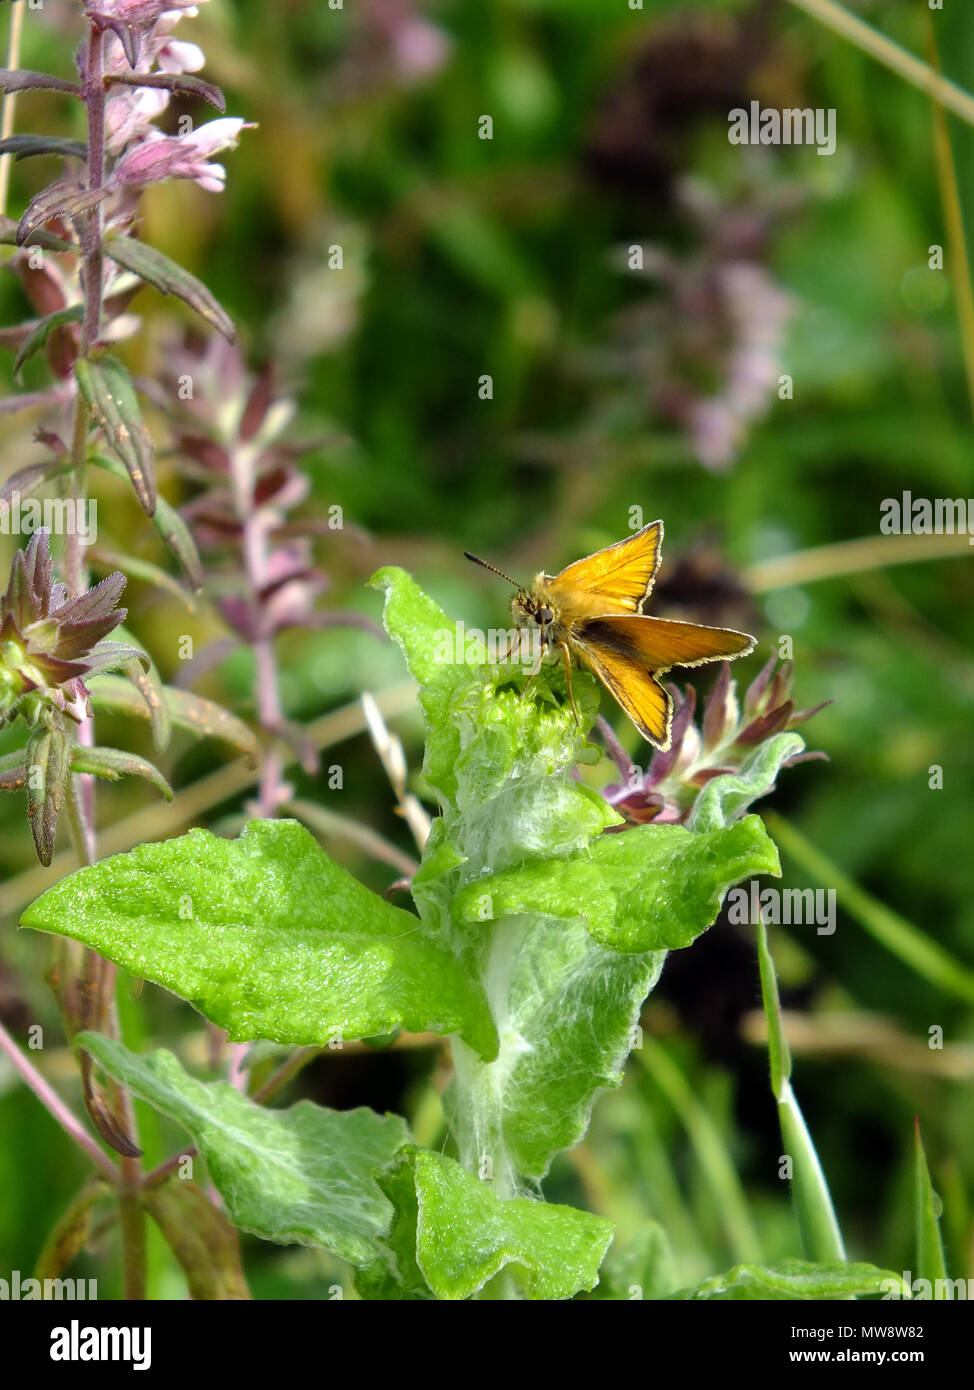 Large Skipper Feeding on Nectar from Wildflowers - Stock Image